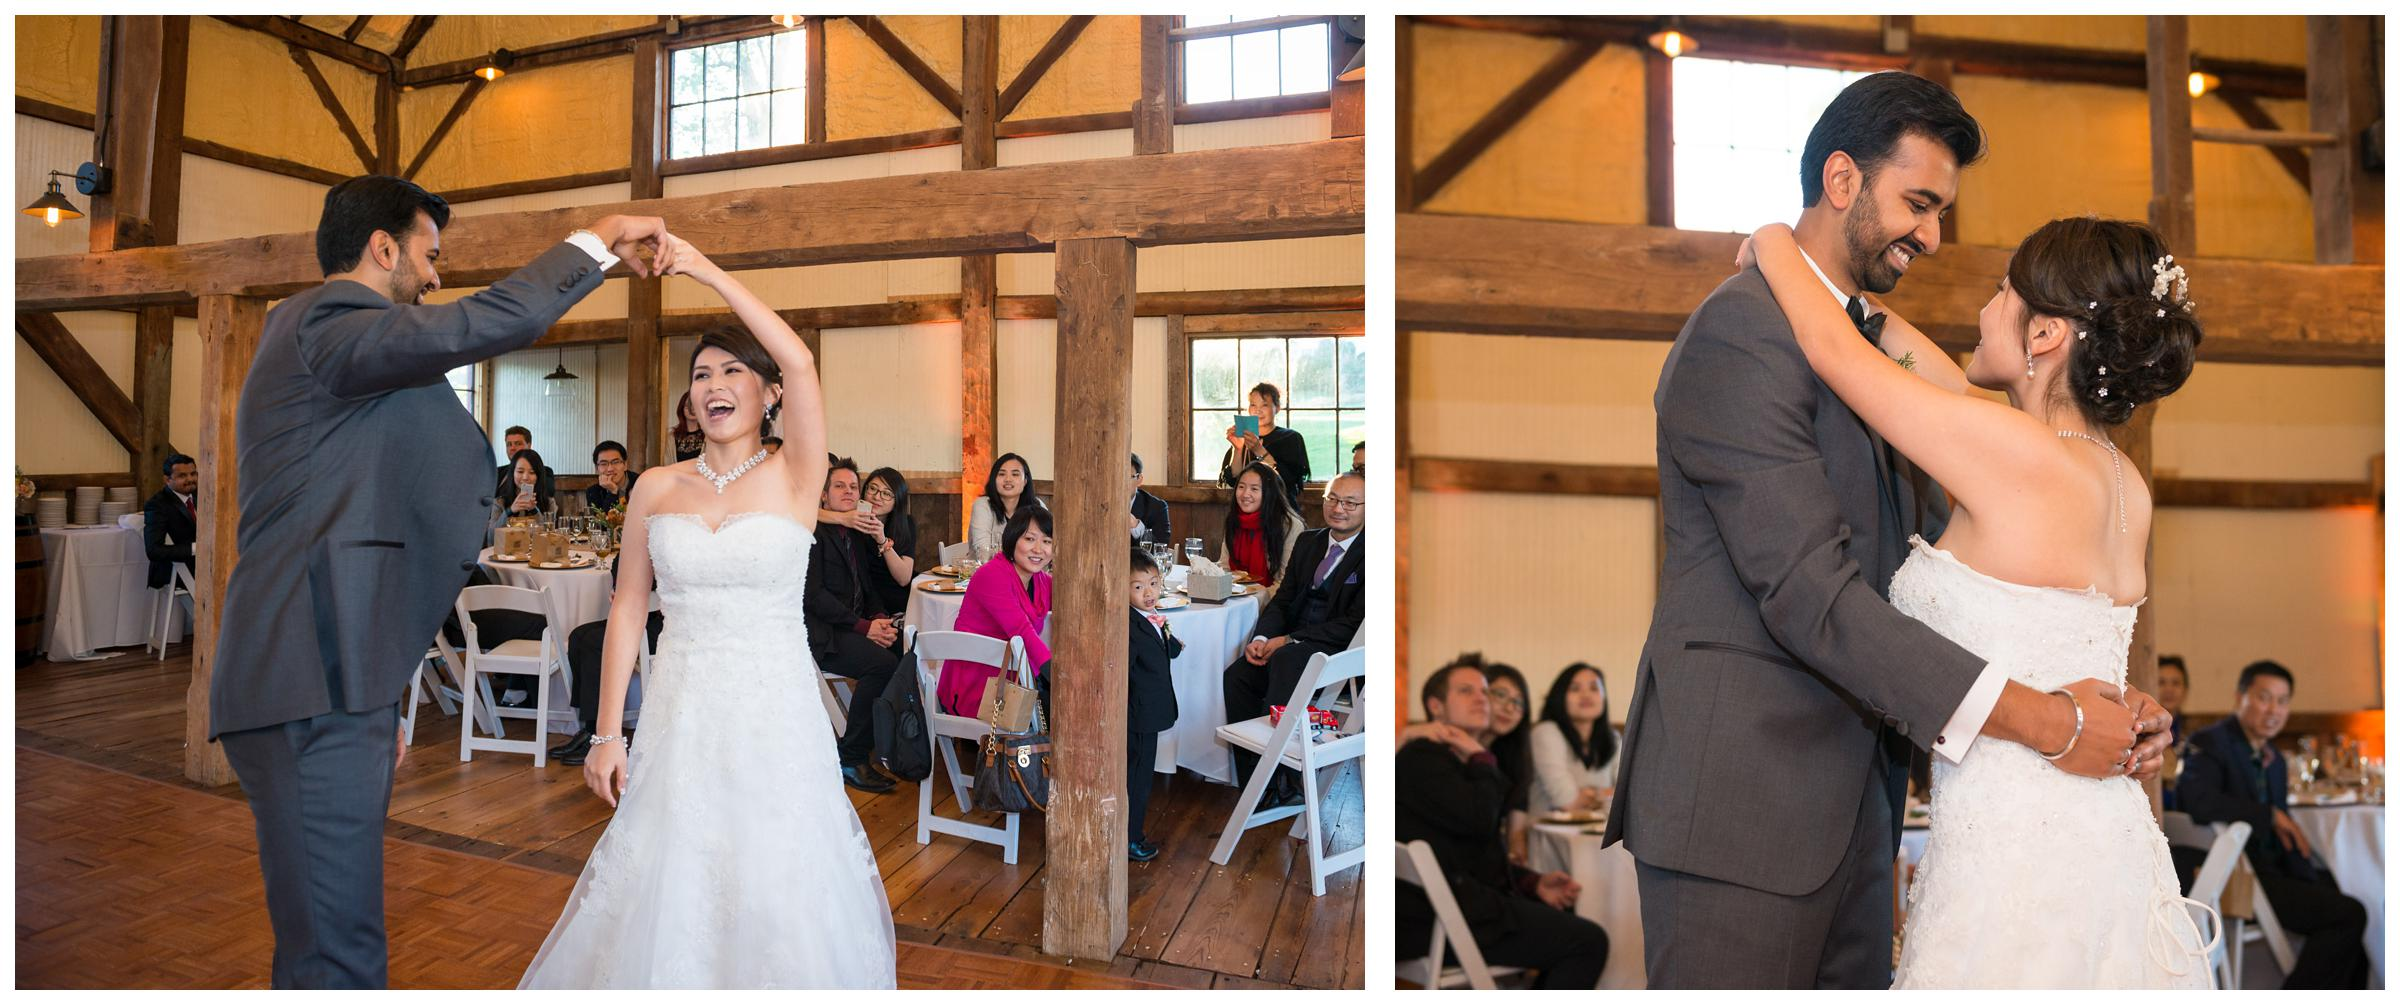 Bride and groom have their first dance during rustic barn reception at Stoneleigh Golf Club in Round Hill, Virginia.